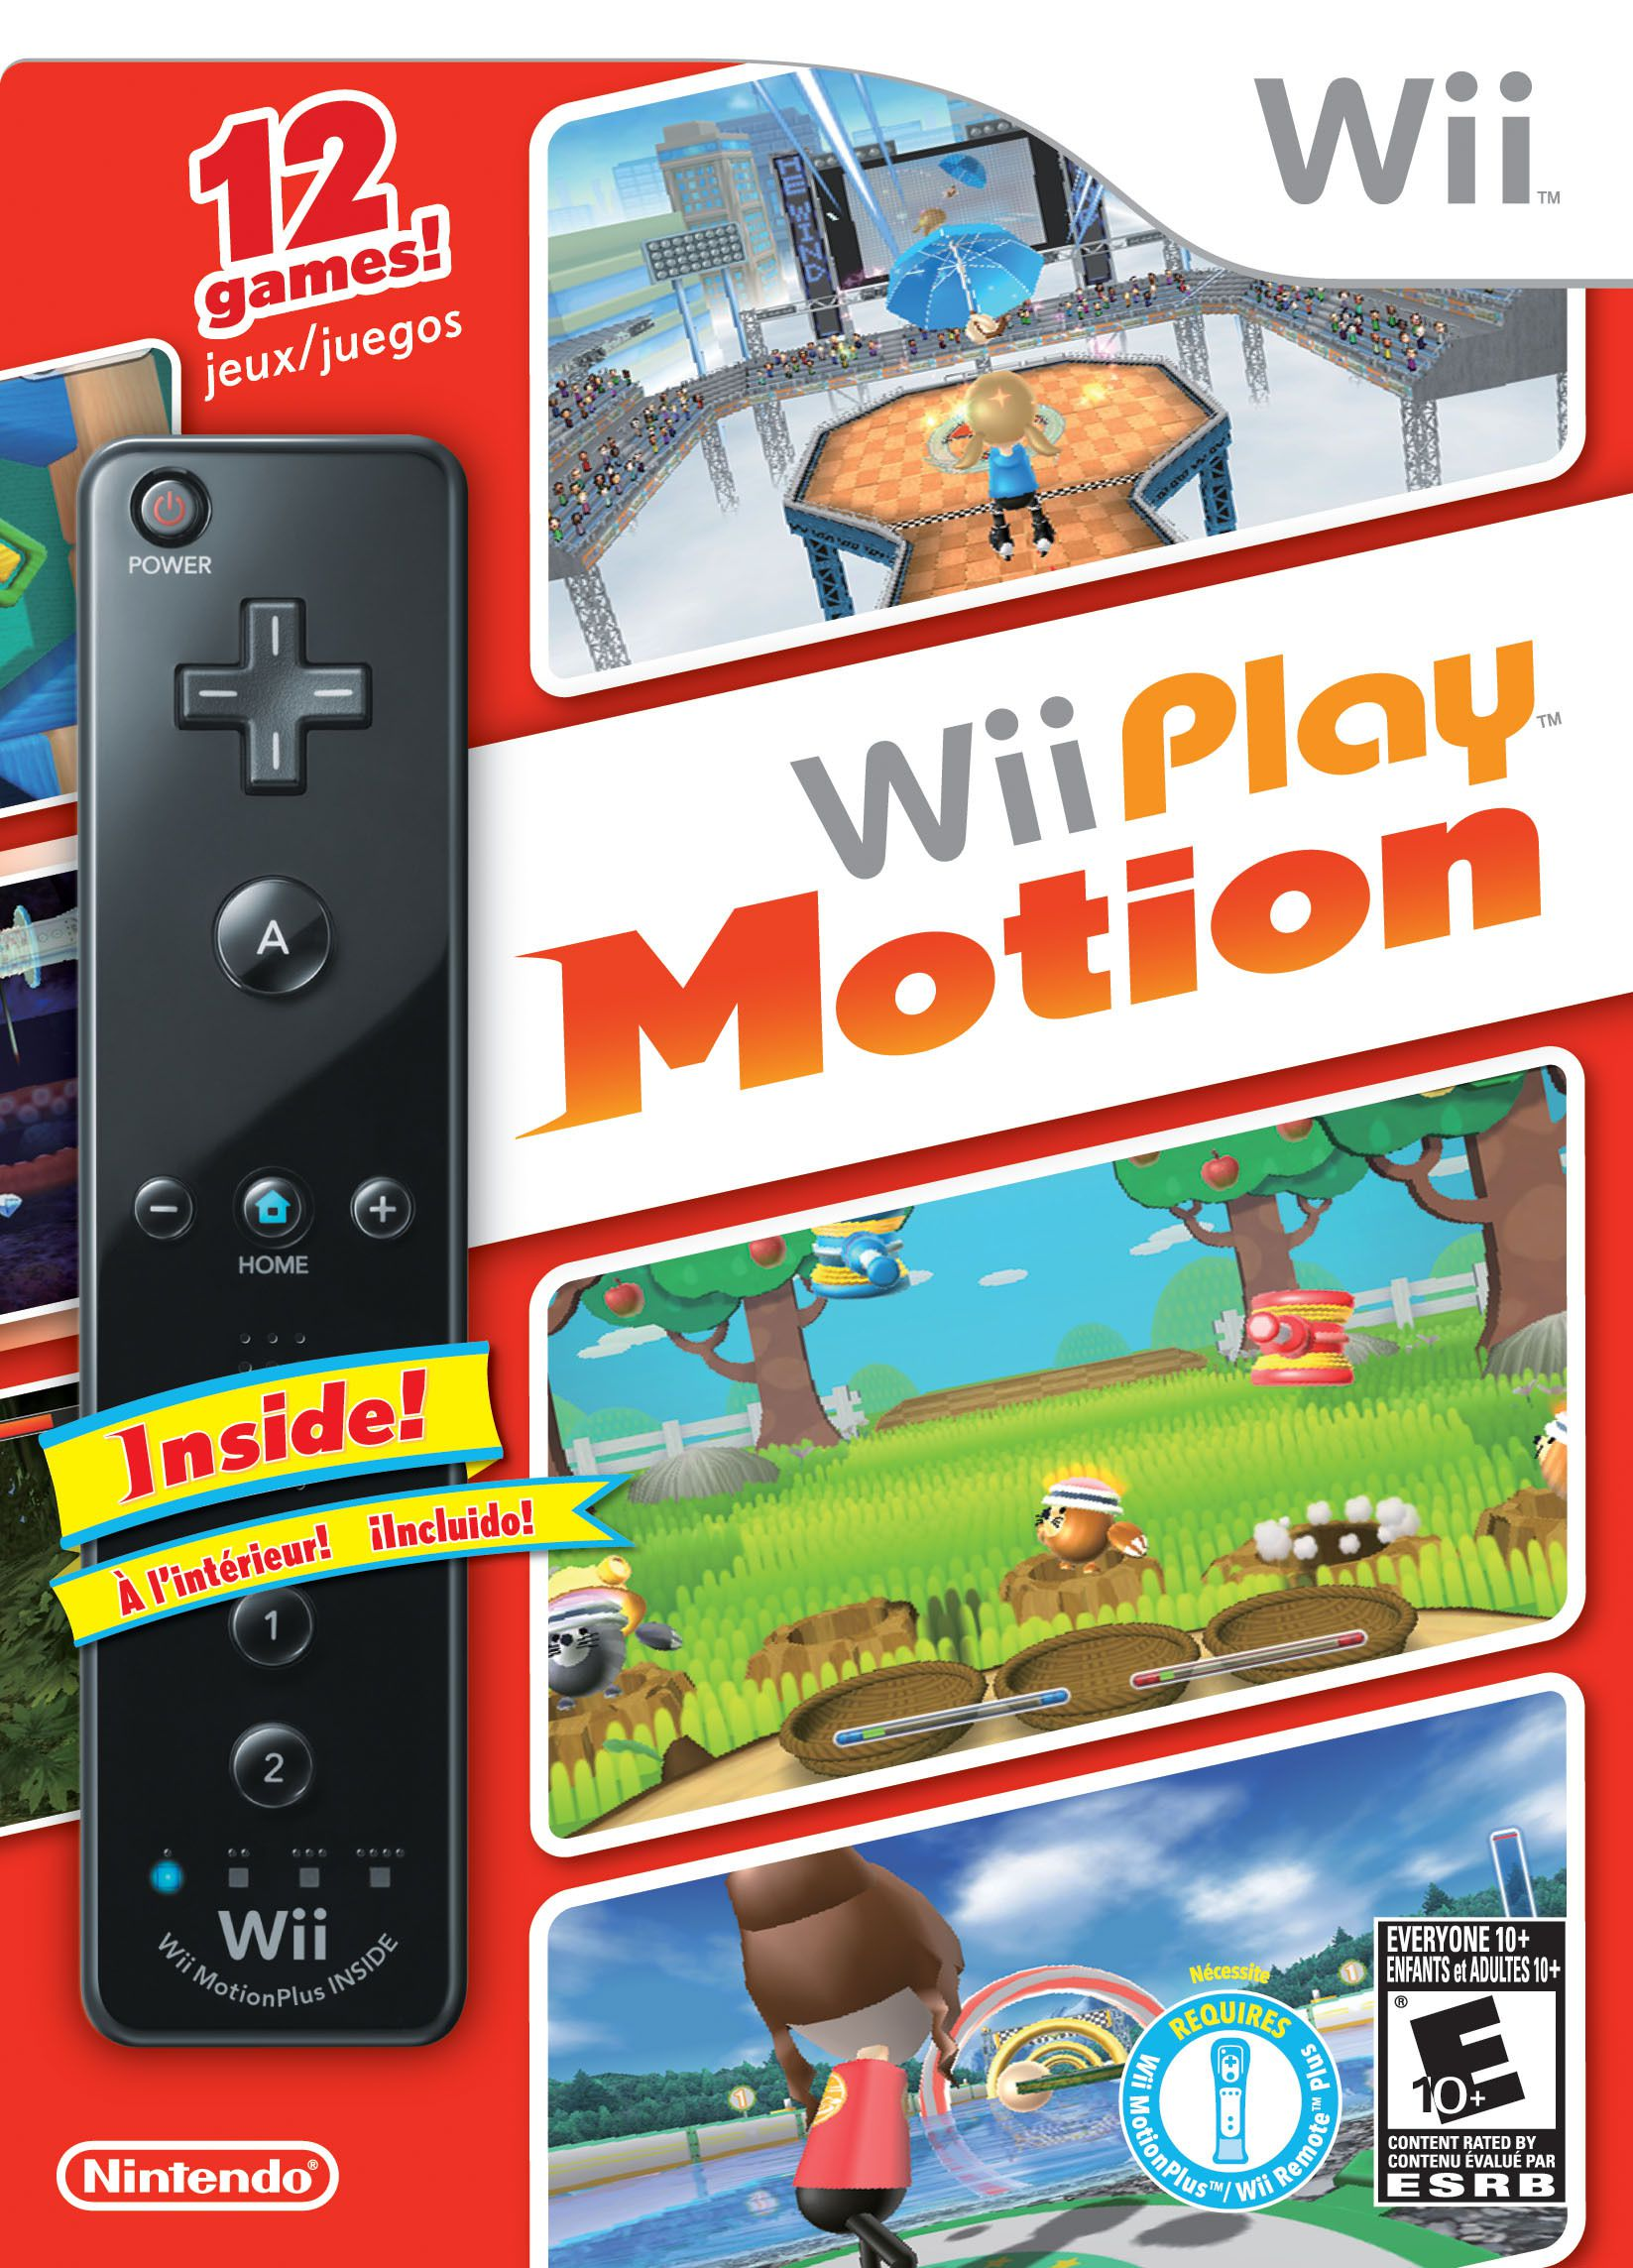 Publicity still for Wii Play Motion